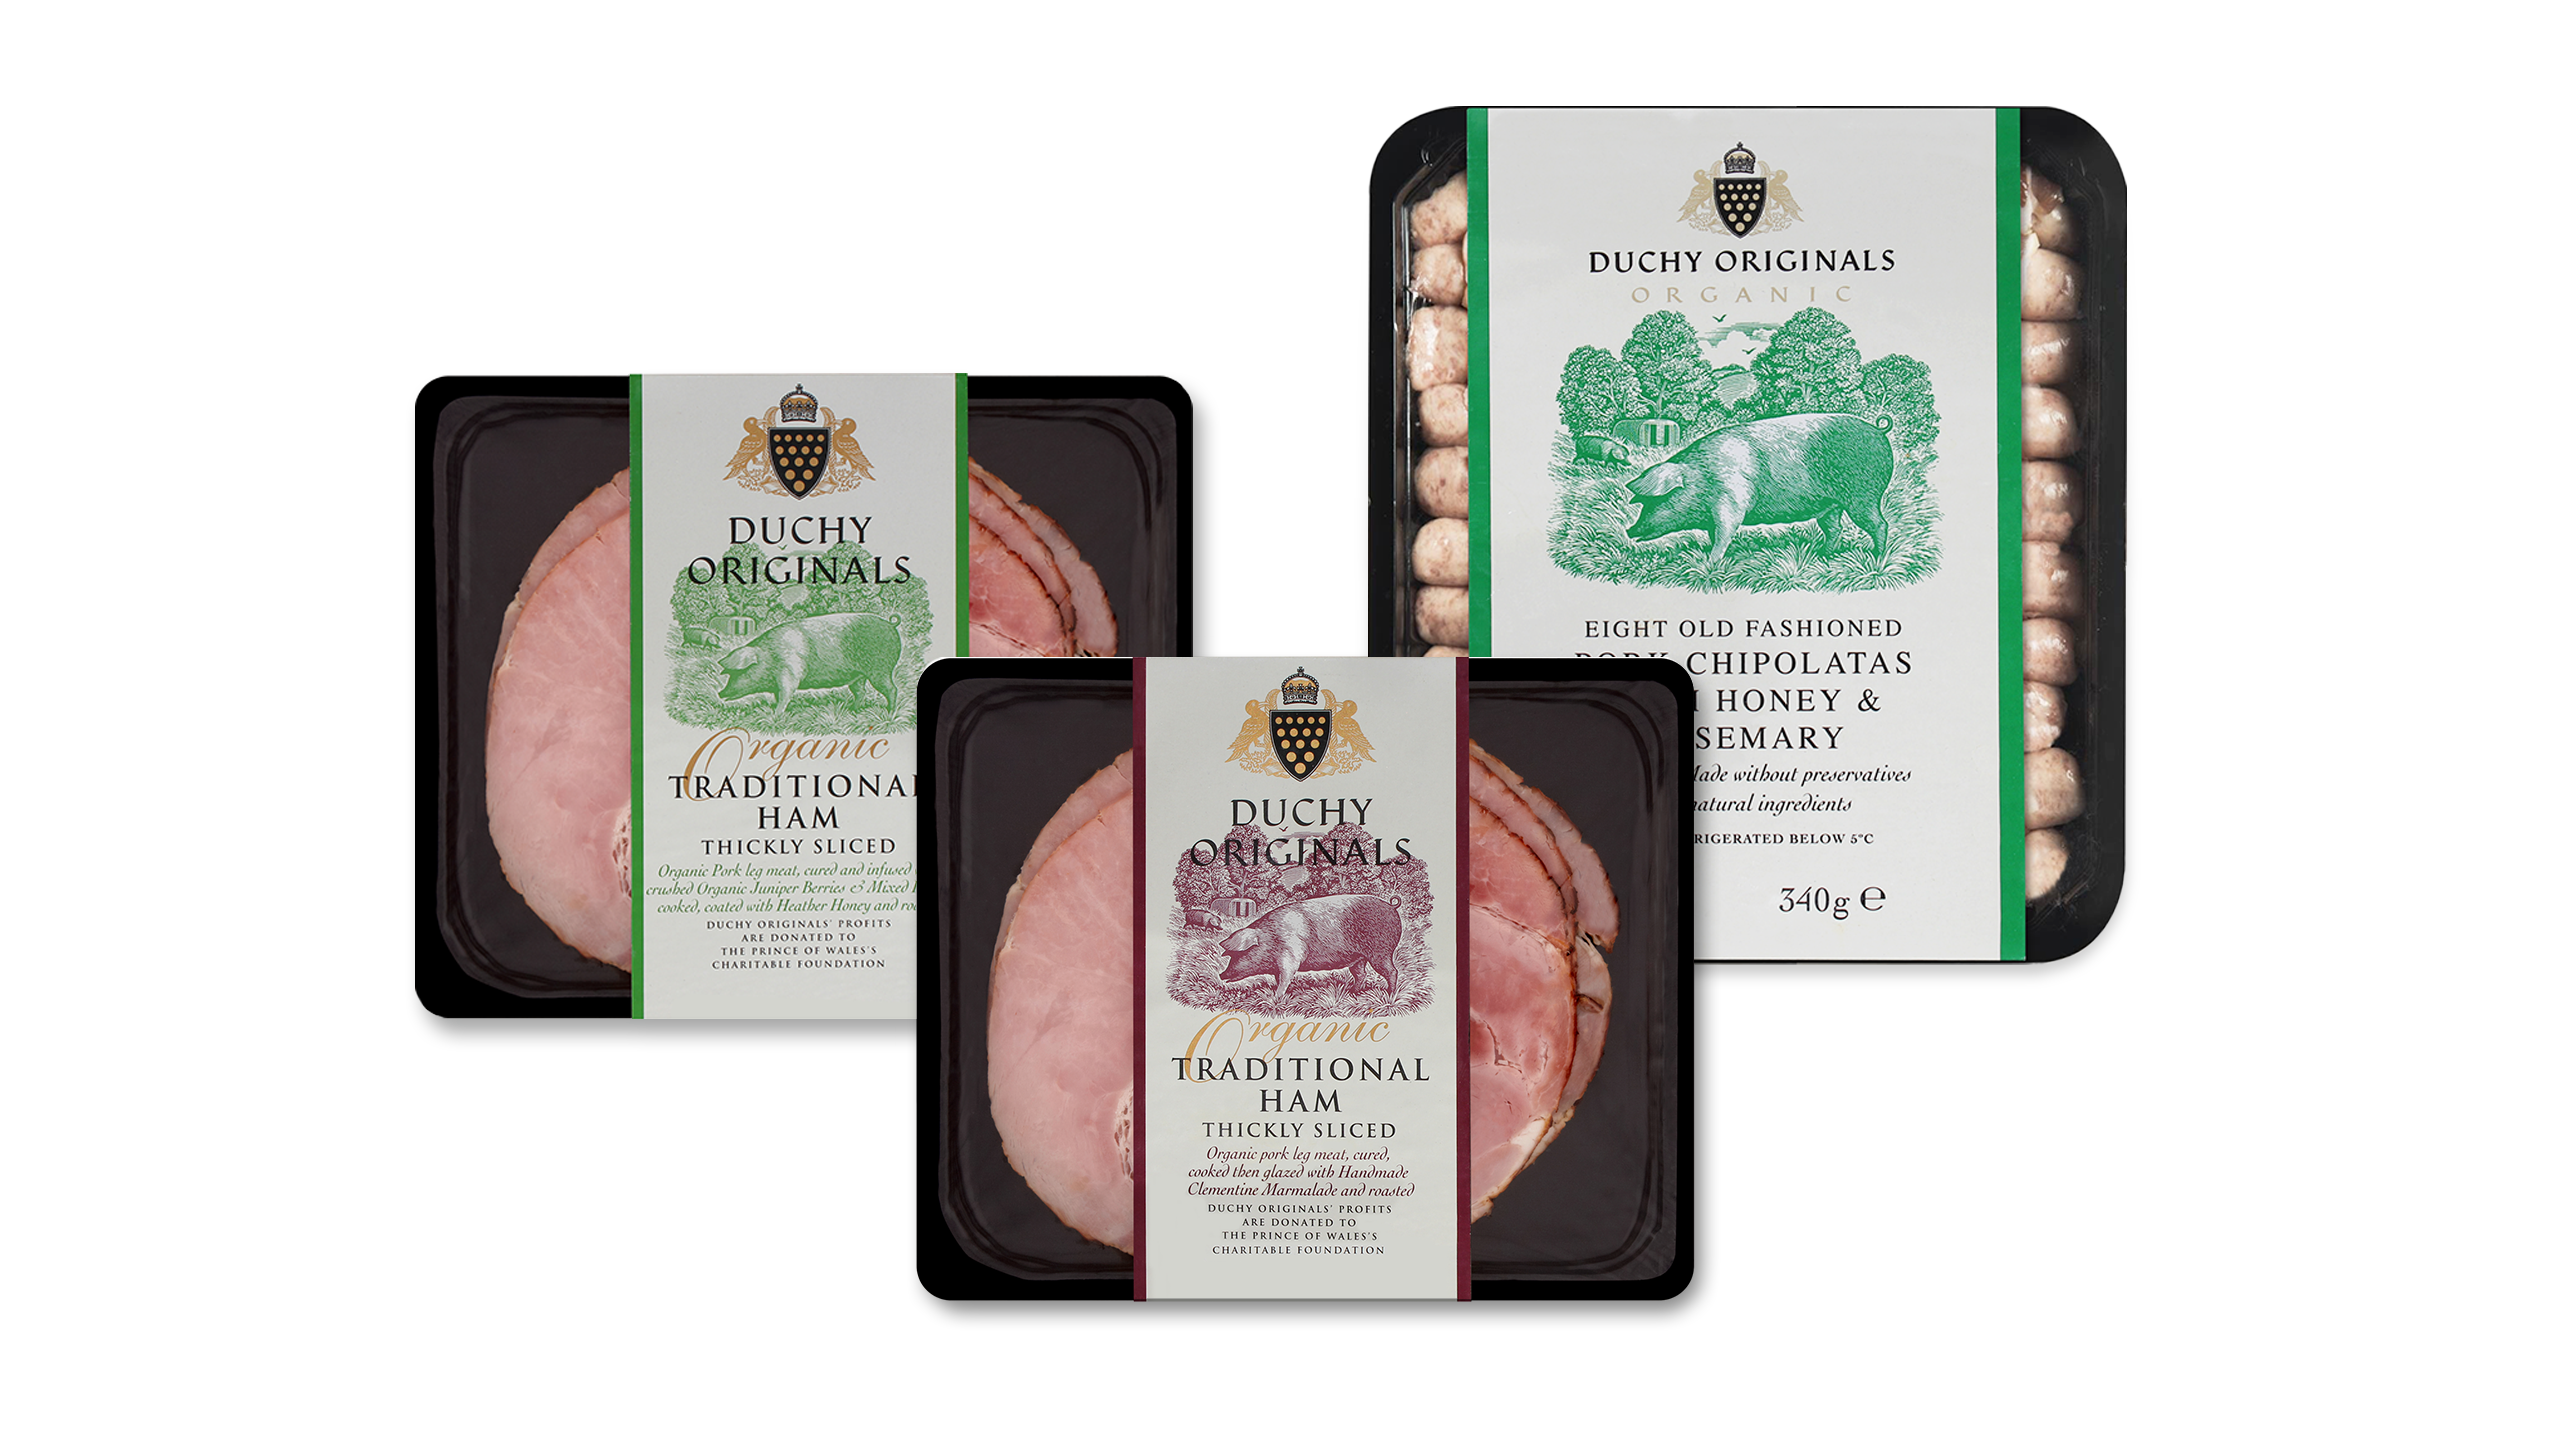 packaging design for organic duchy originals ham and chipolata sausages